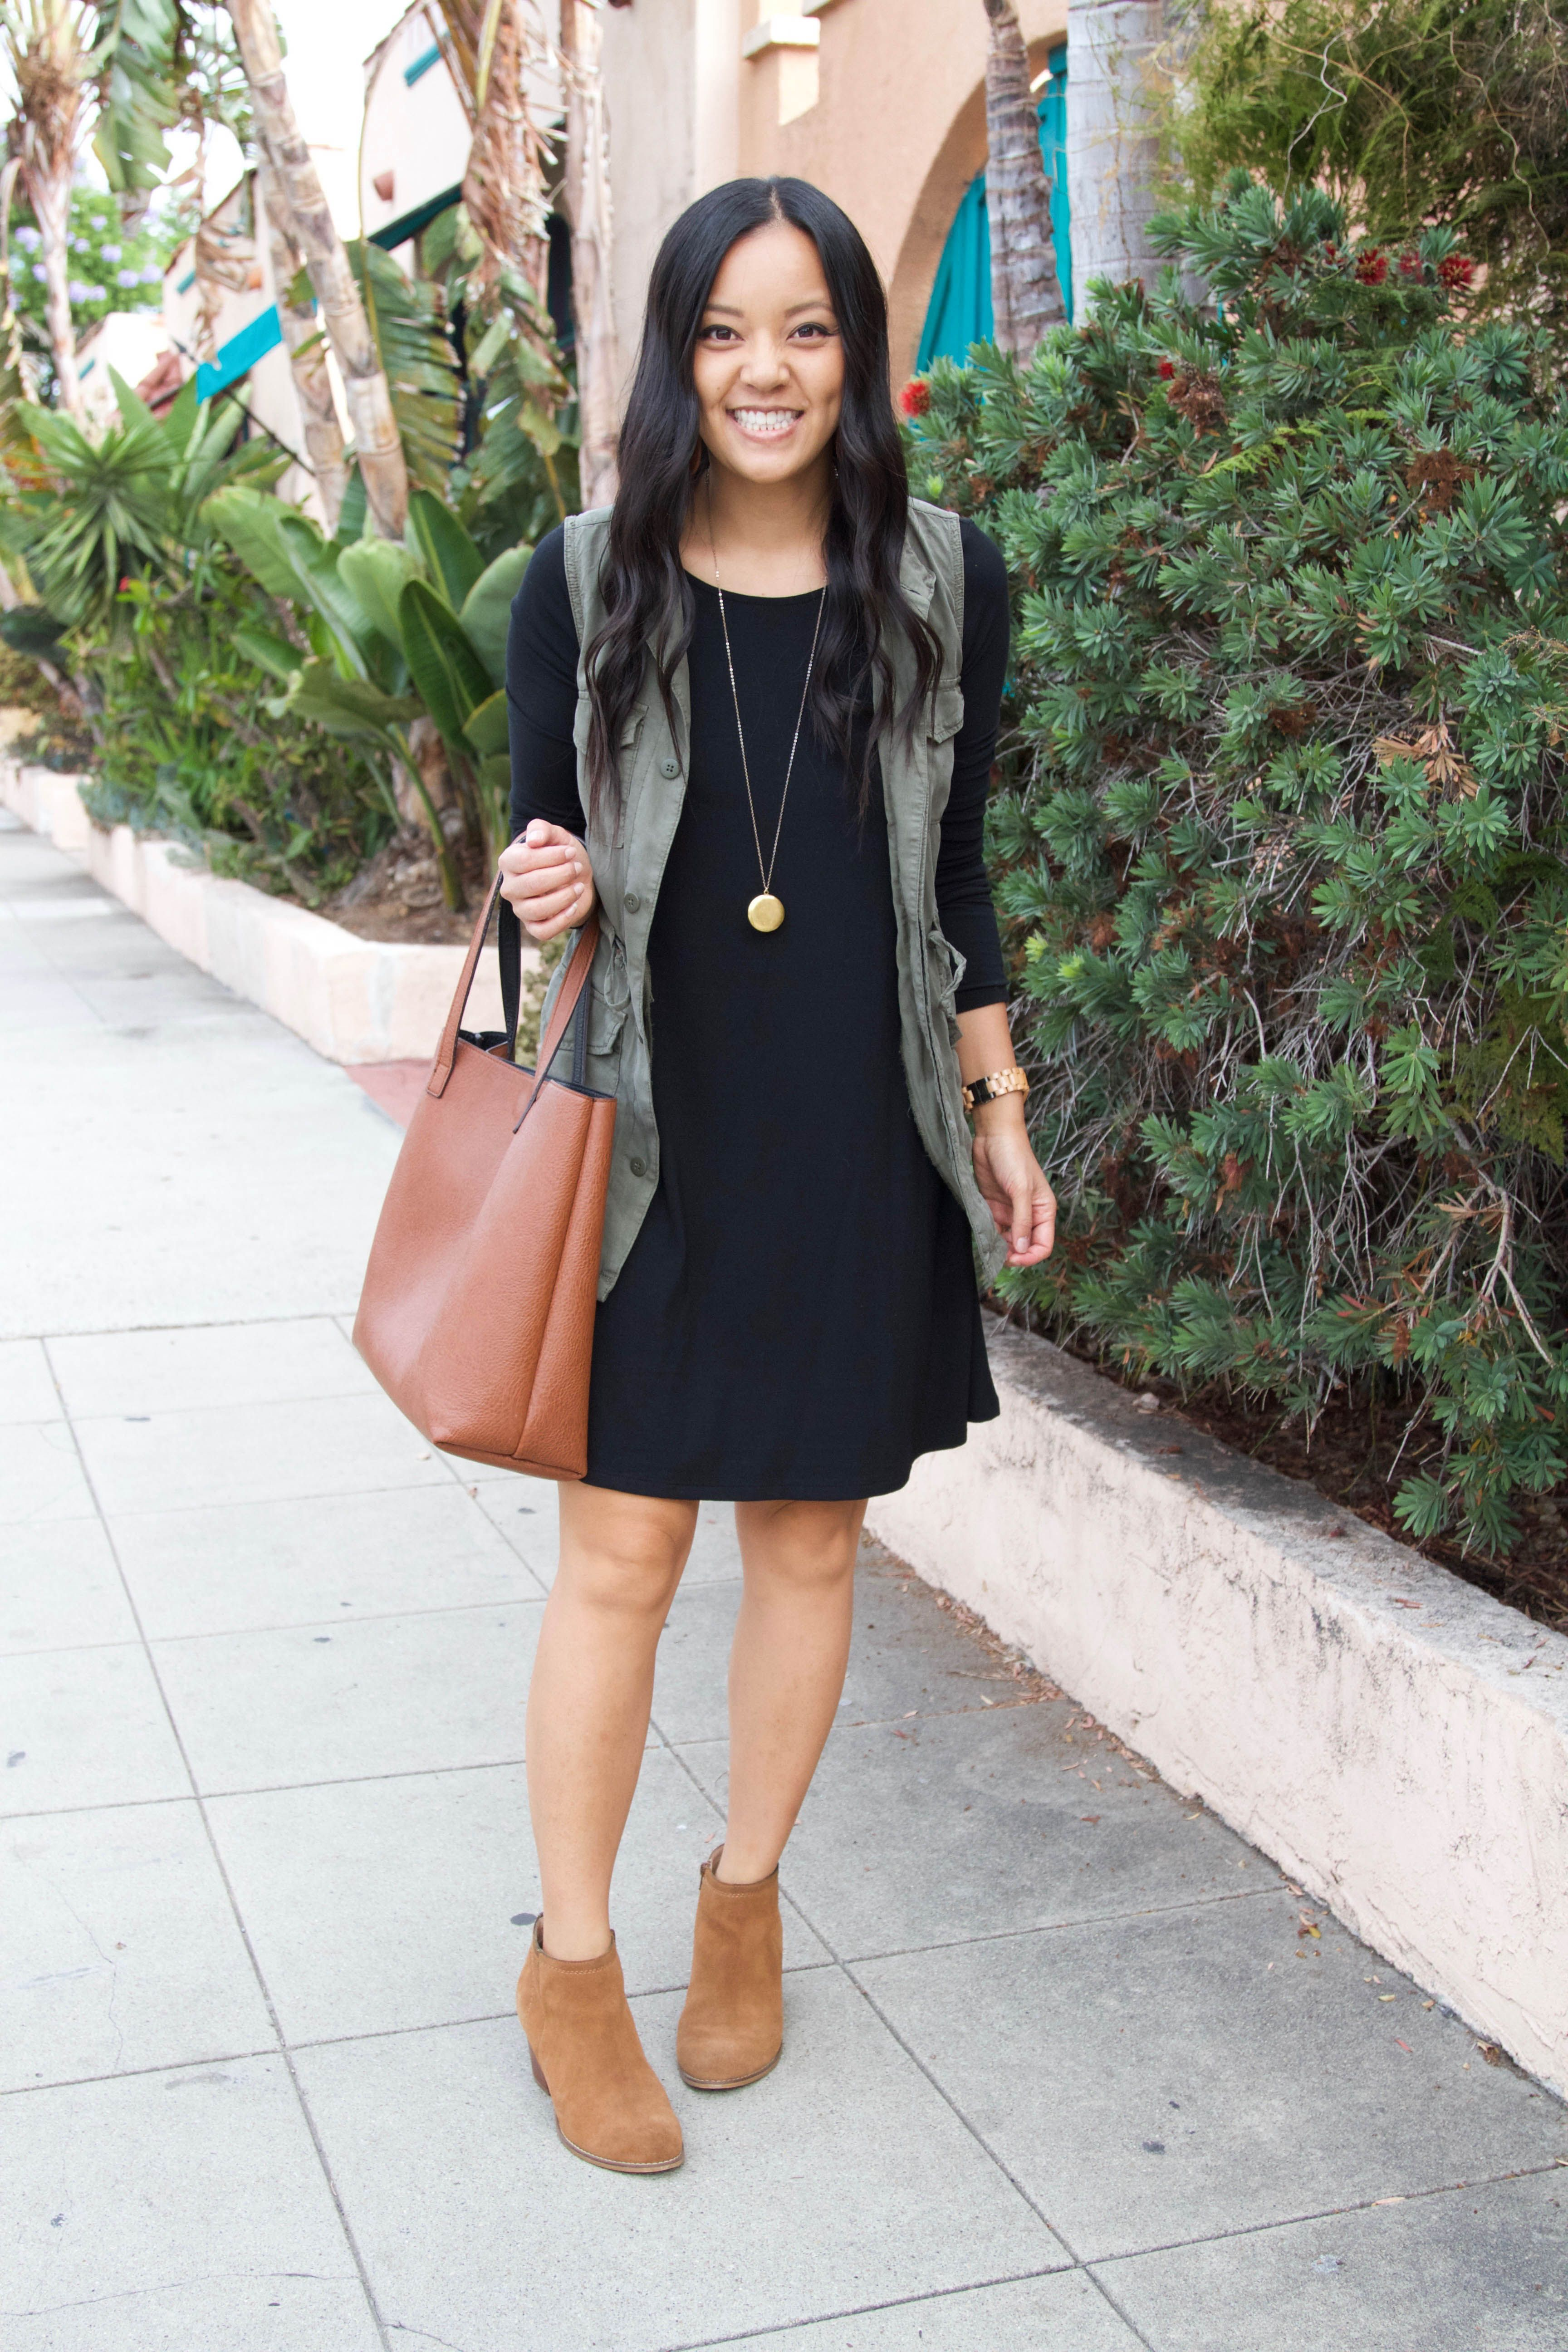 5 Ways To Wear A Utility Vest Tips For Finding One Swing Dresses Outfit Black Swing Dress Outfit Black Dress Outfit Winter [ 5184 x 3456 Pixel ]